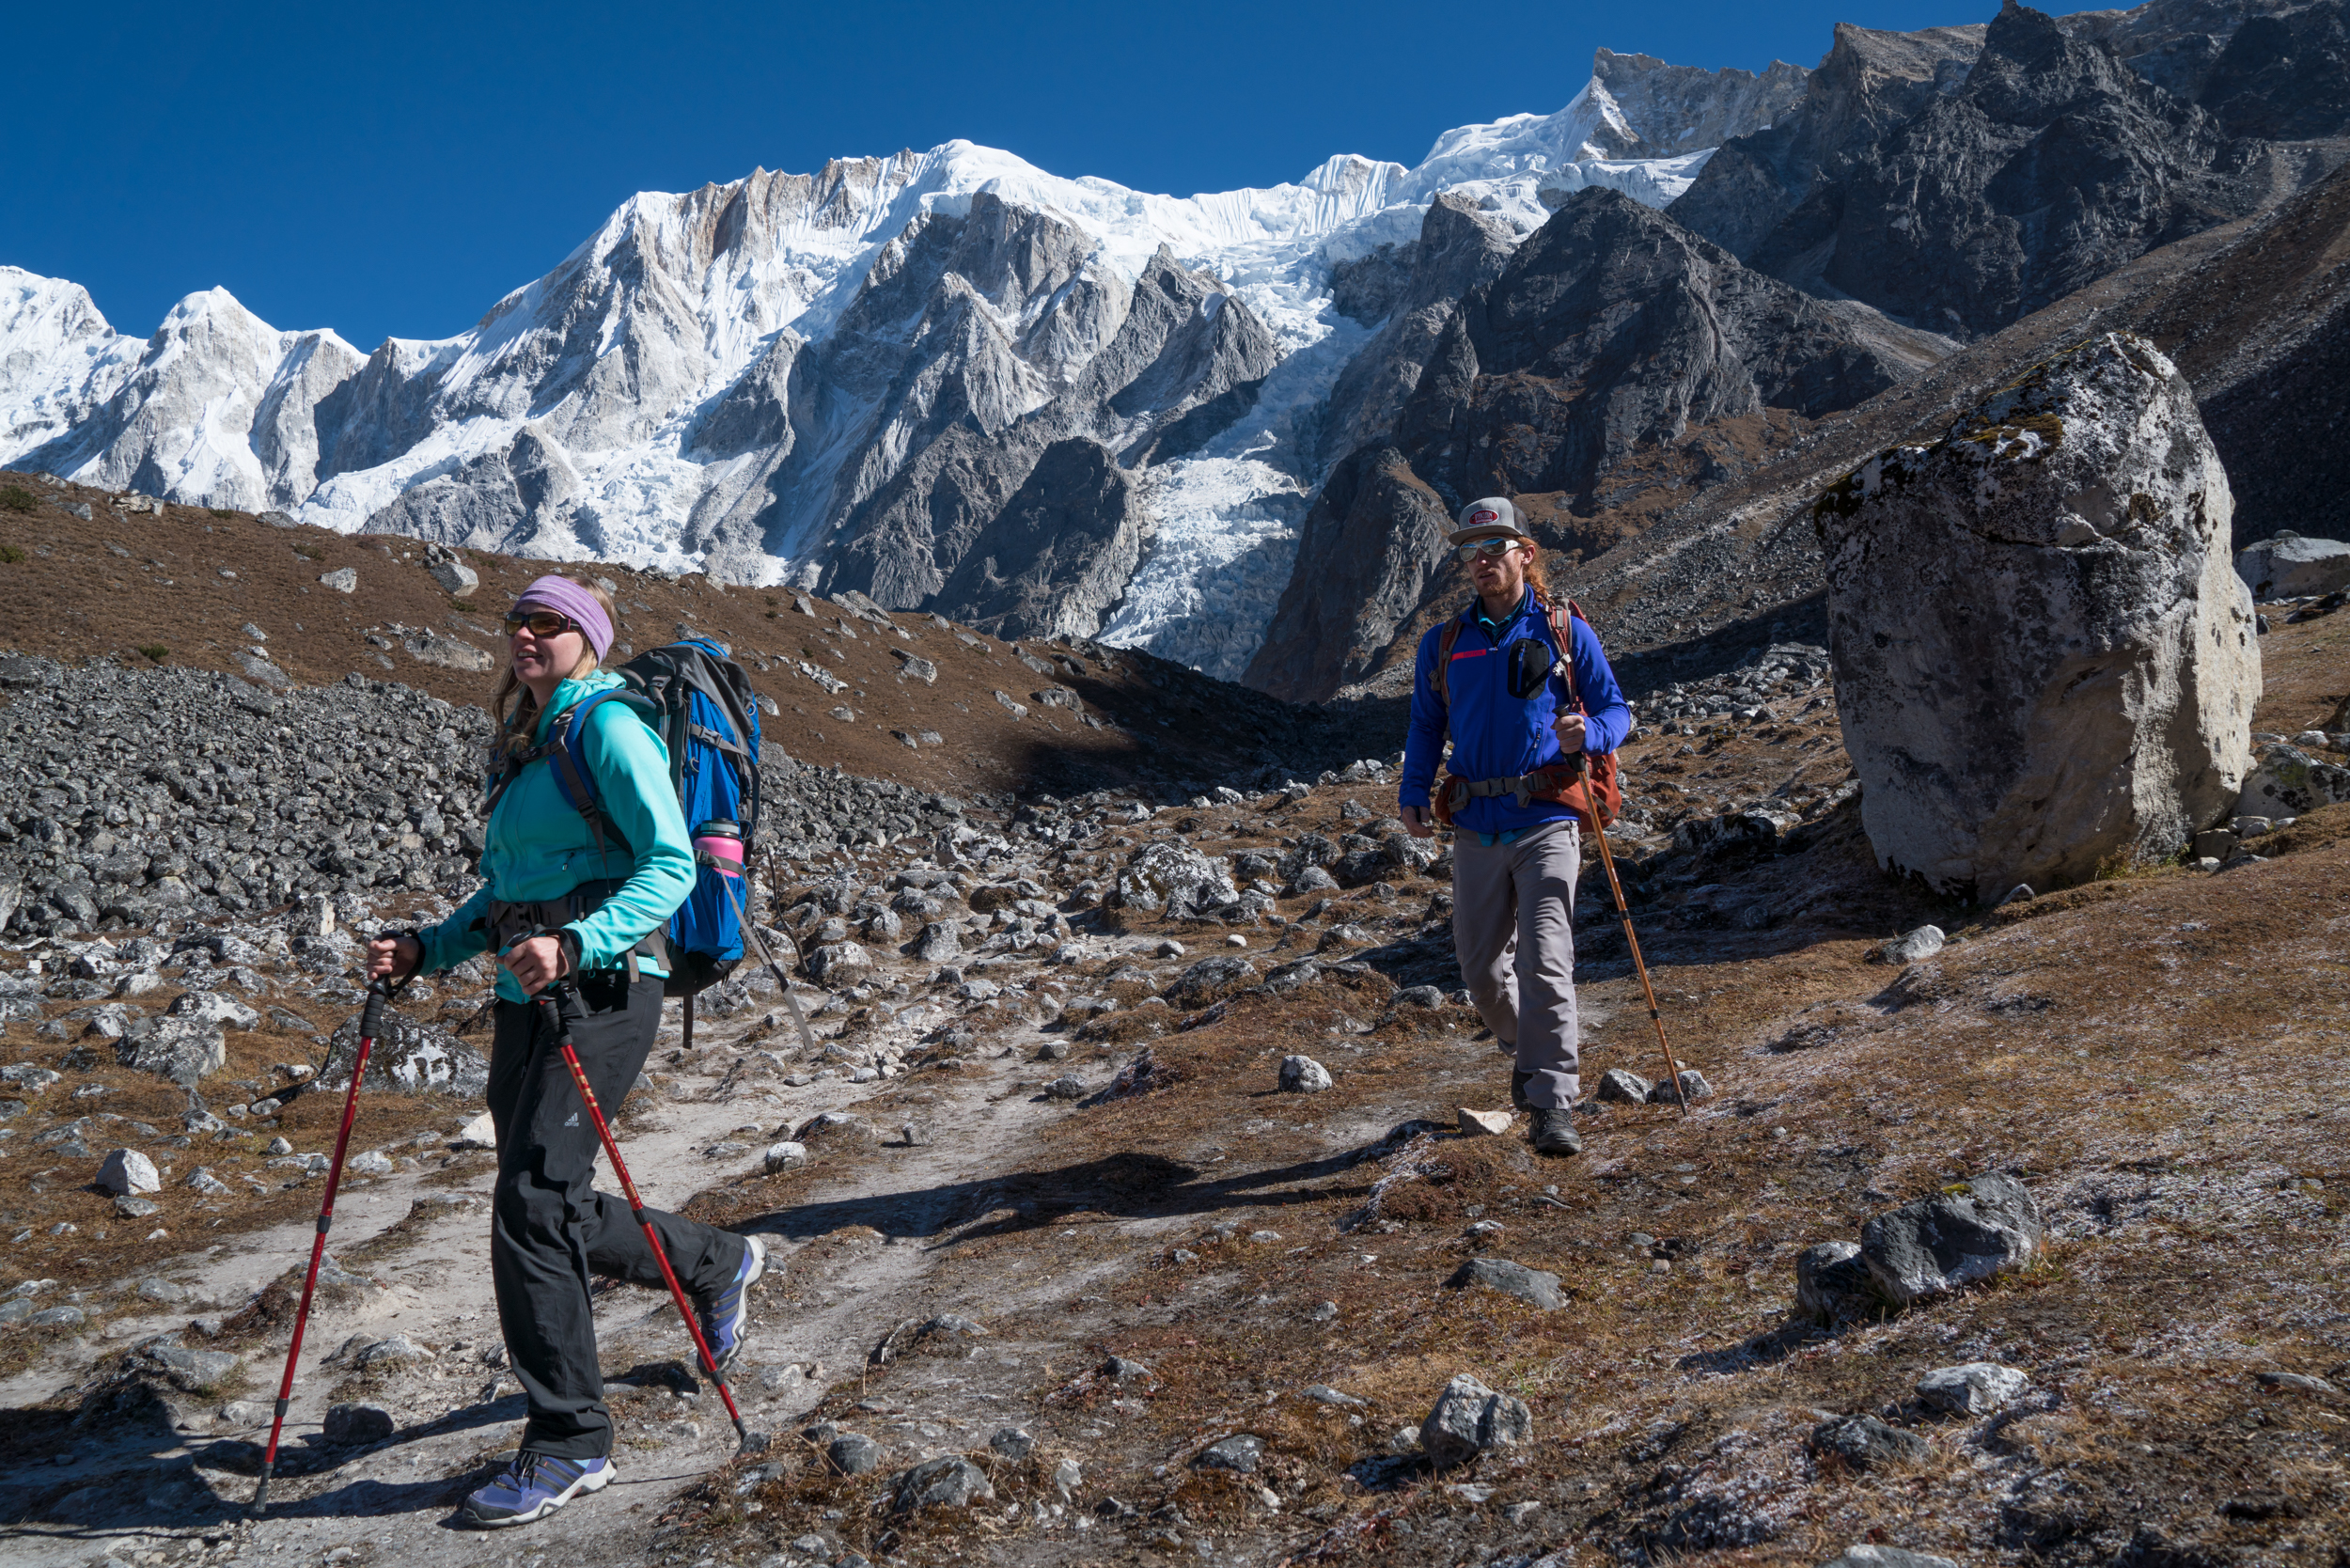 Production manager Cherise Tuttle and director Scott Rogers make their way over 5,200 meter Larke Pass. photo: cody tuttle